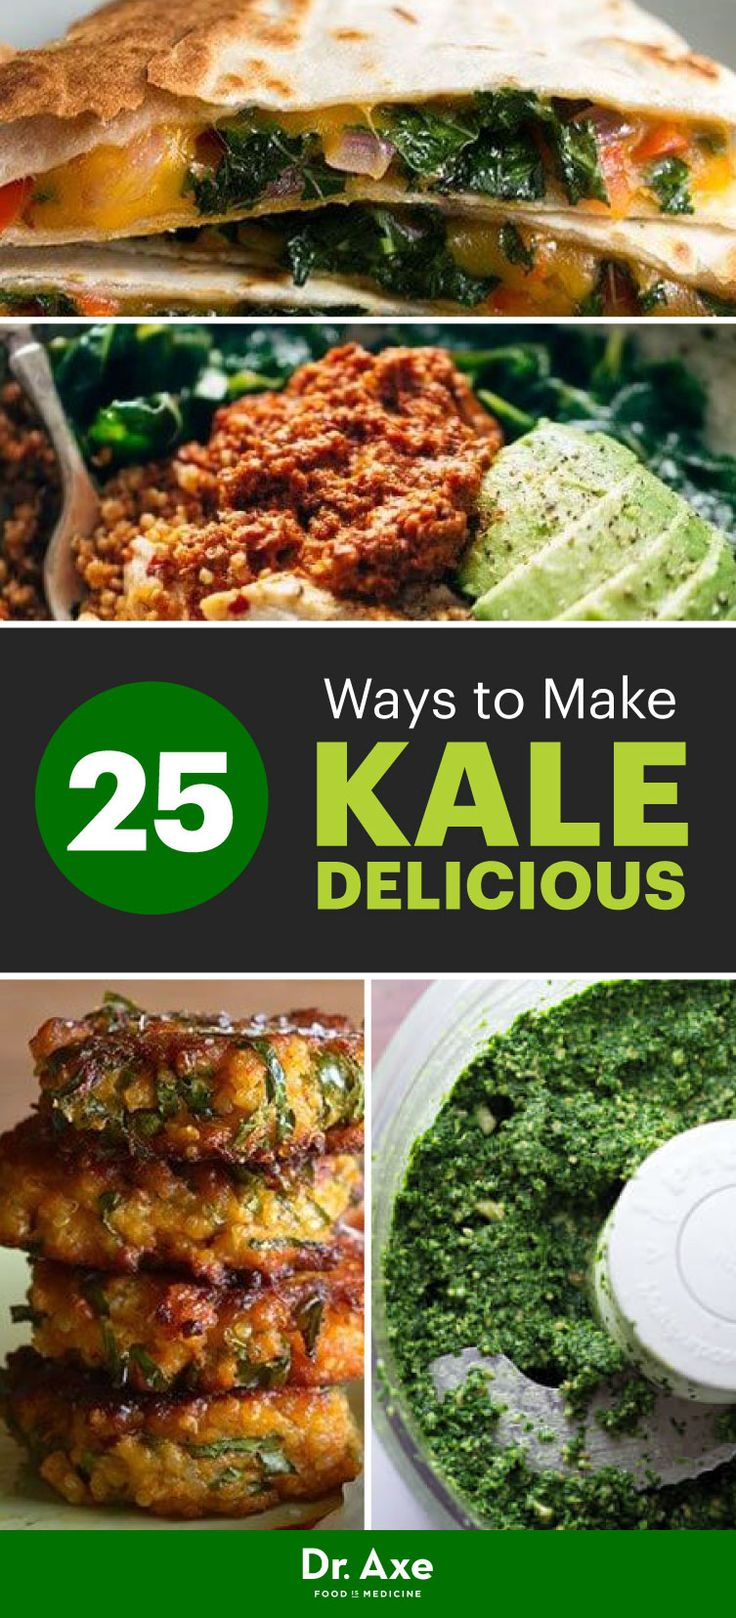 Trendy or not, the health benefits of kale can't be overstated.